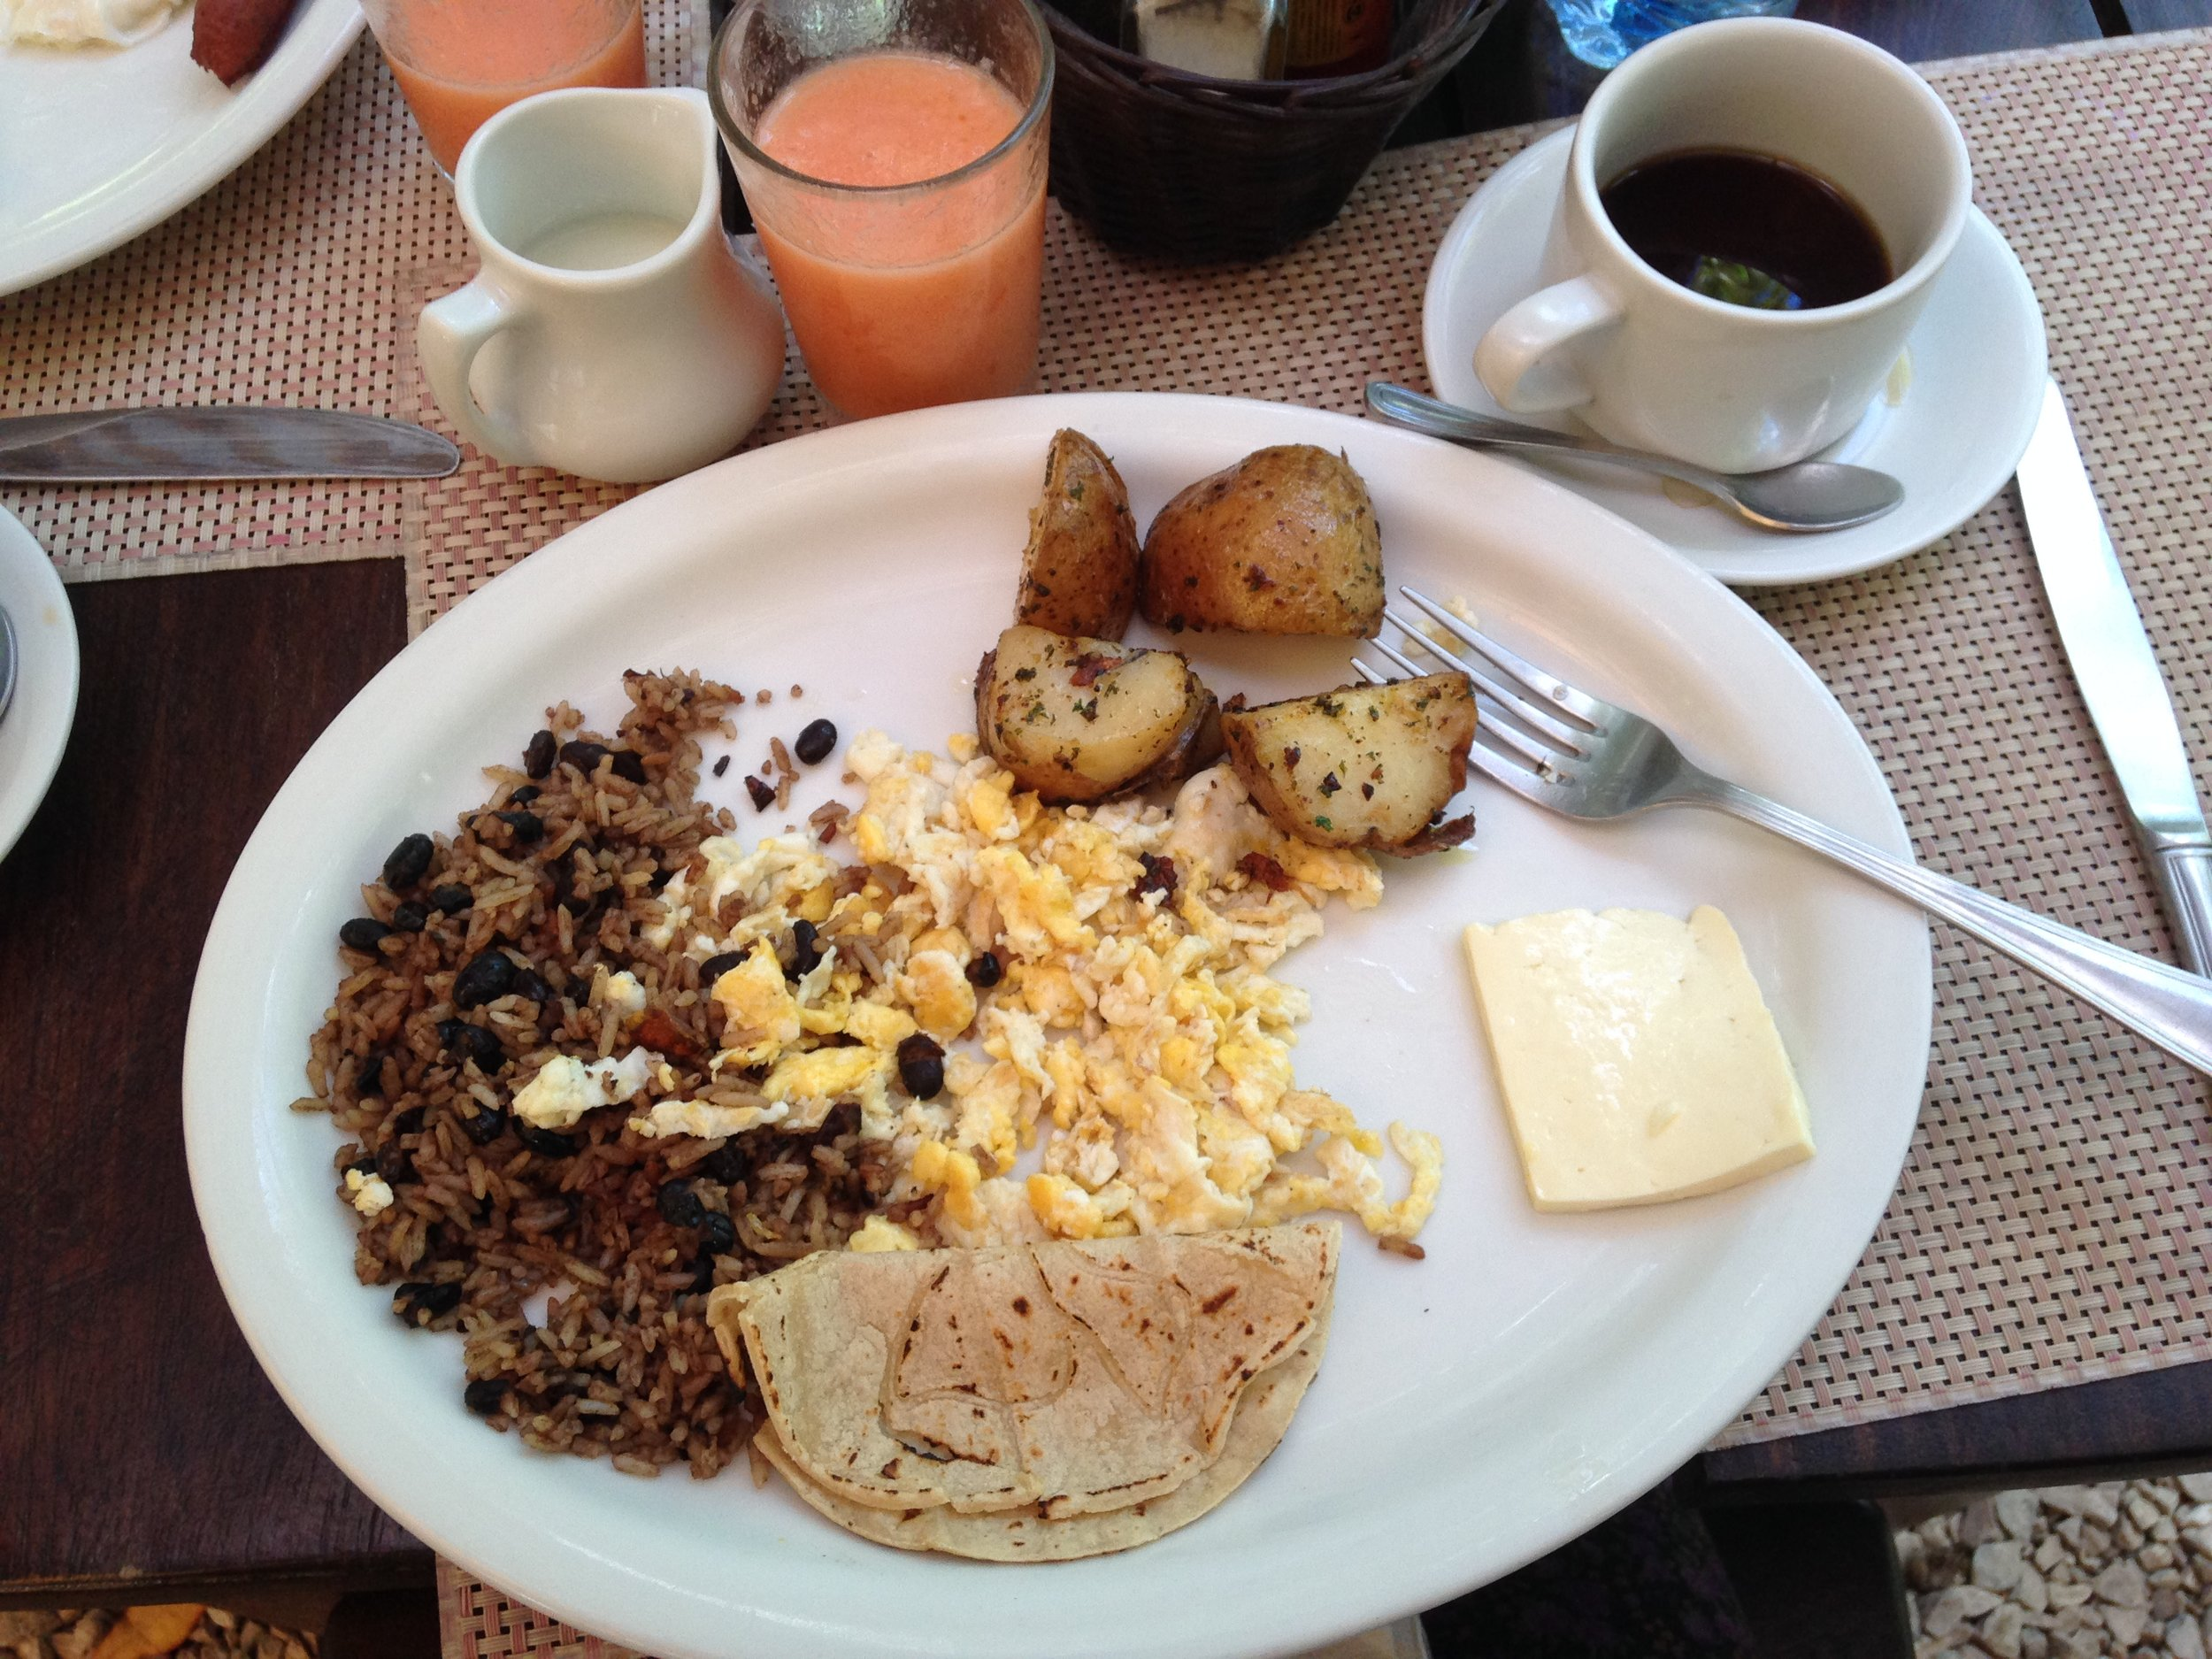 A typical Costa Rican breakfast: gallo pinto with scrambled eggs, fresh tortillas and a couple slices of queso turrialba, a local cheese made in Monteverde that's rindless, unaged and has a high water content. The potatoes are not typical but were included because they were at a hotel